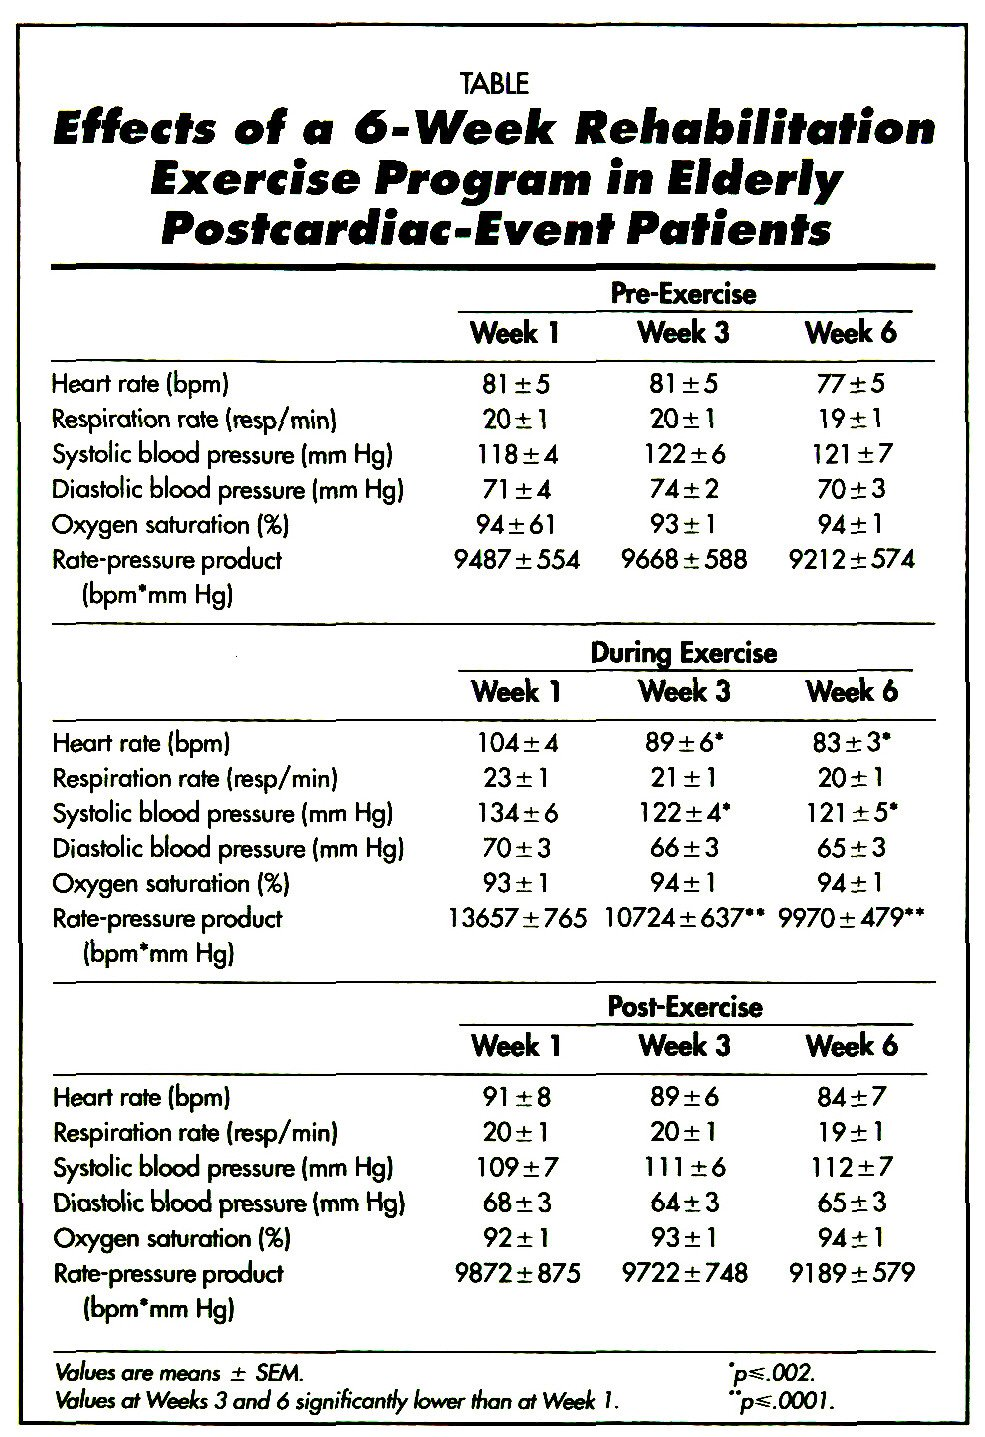 TABLEEffects of a 6-Week Rehabilitation Exercise Program in Elderly Posfcarcffac-Evenf Patients